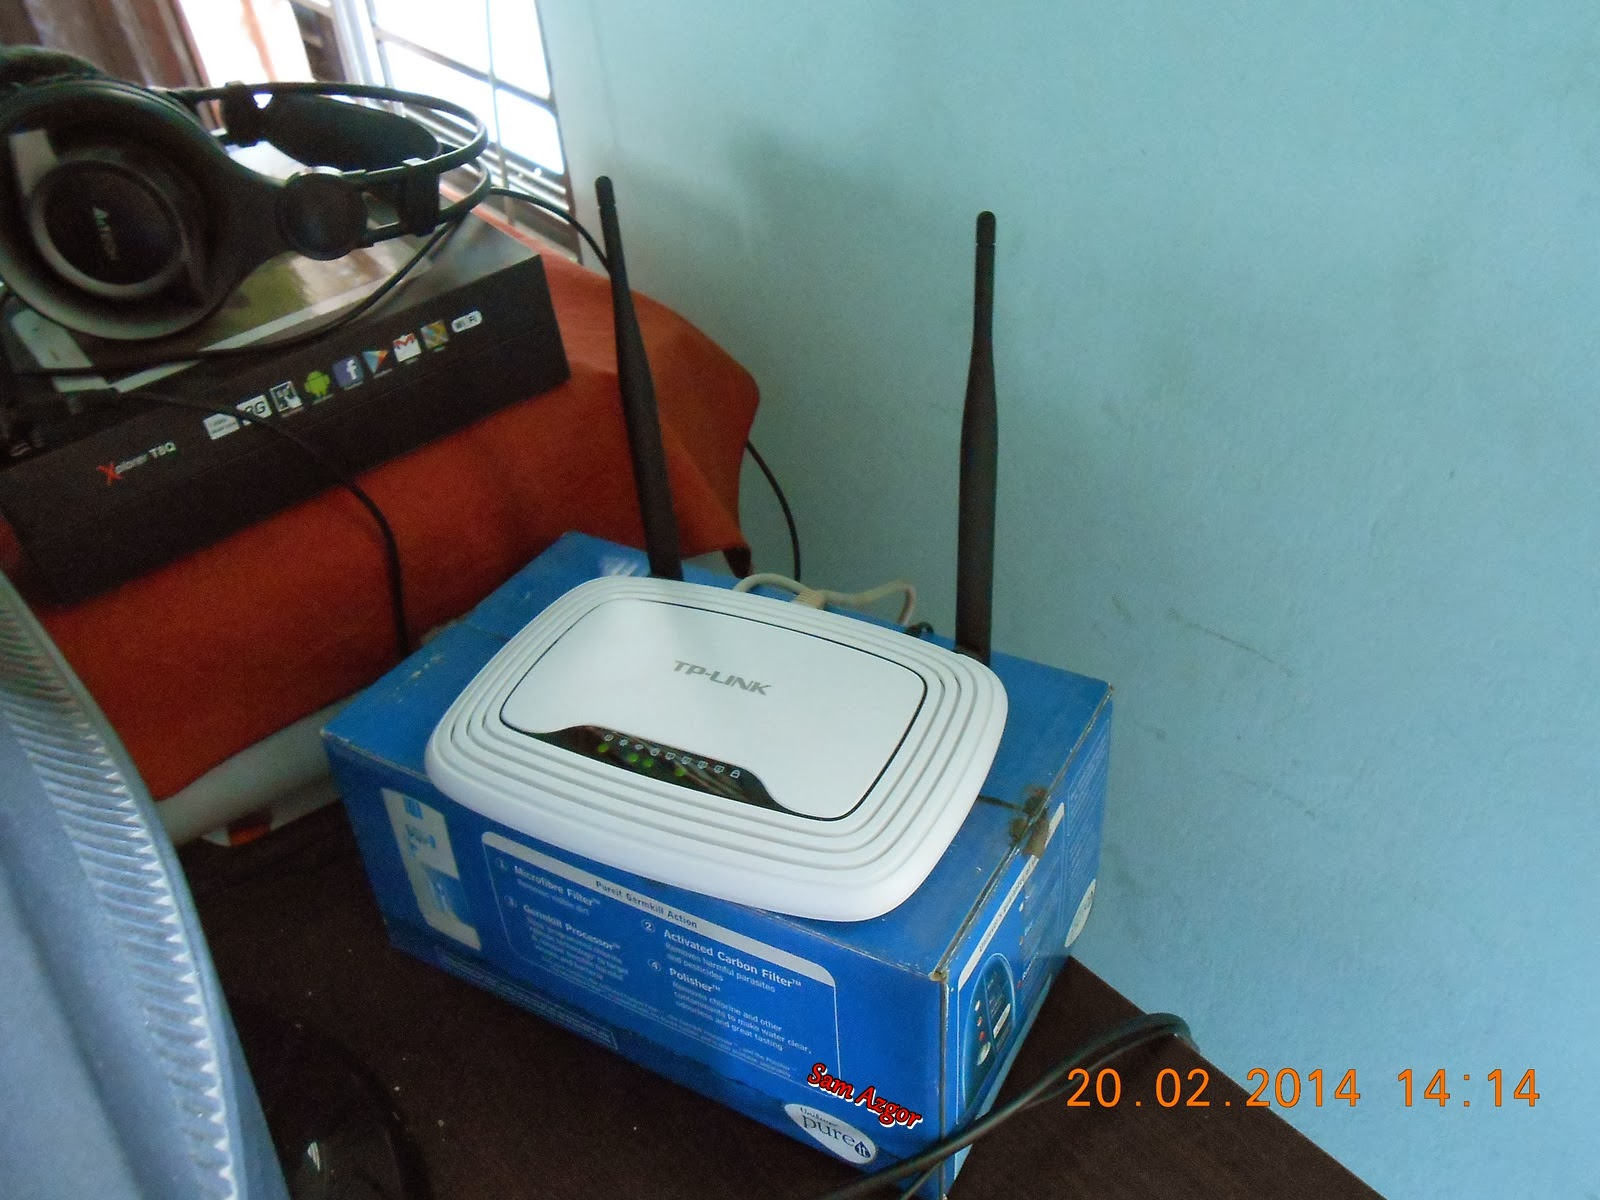 TP Link WR841N Router